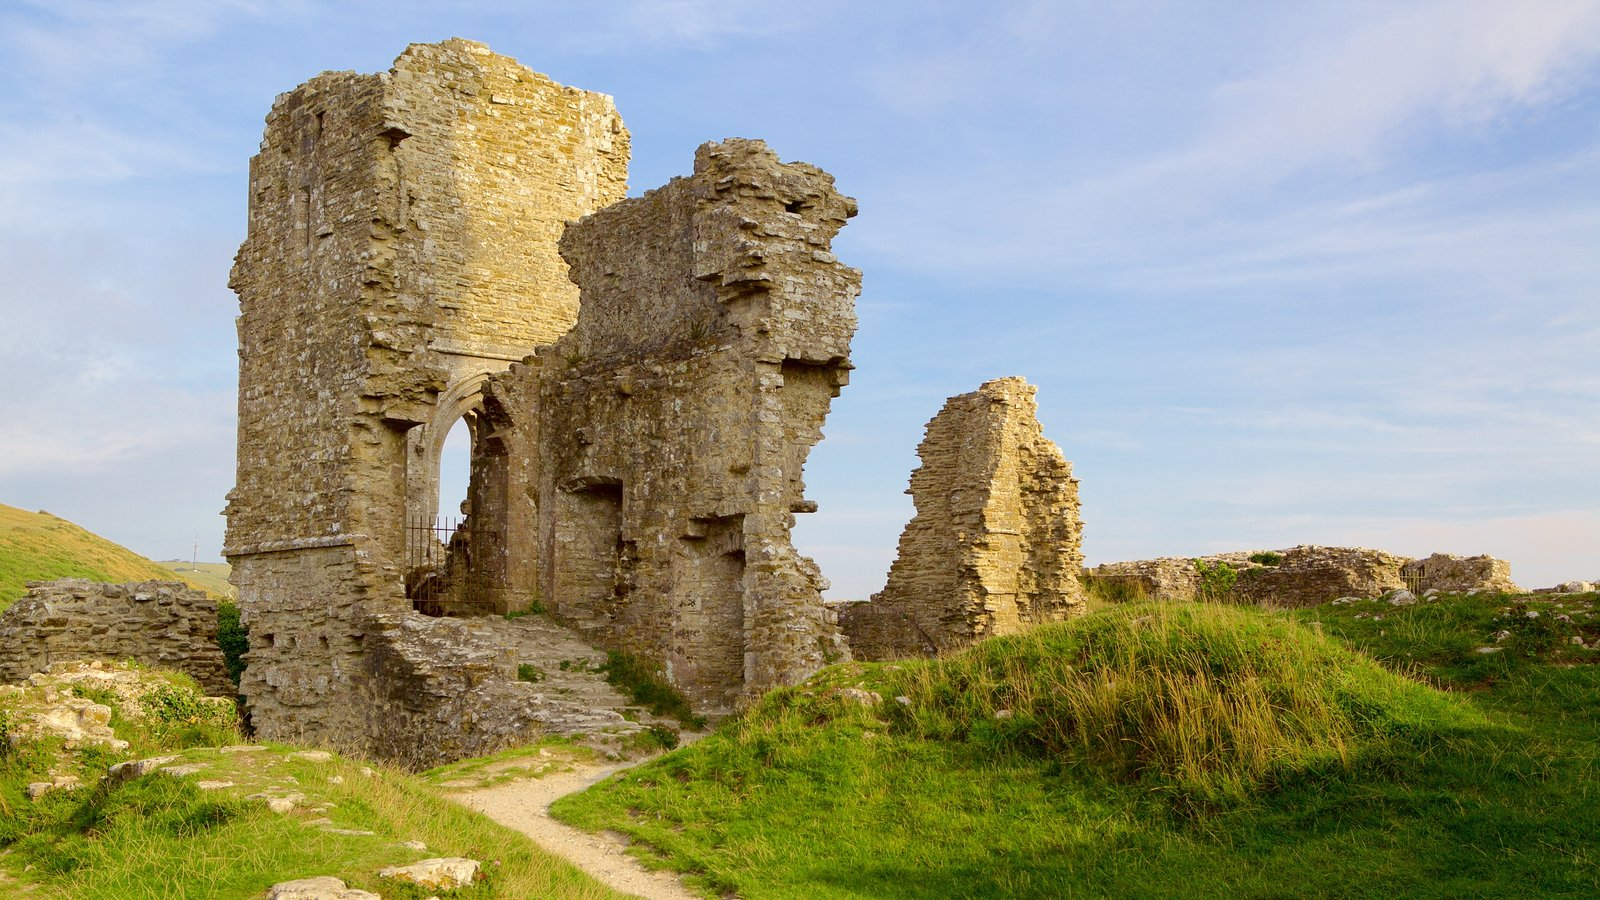 Corfe Castle featuring building ruins and heritage elements